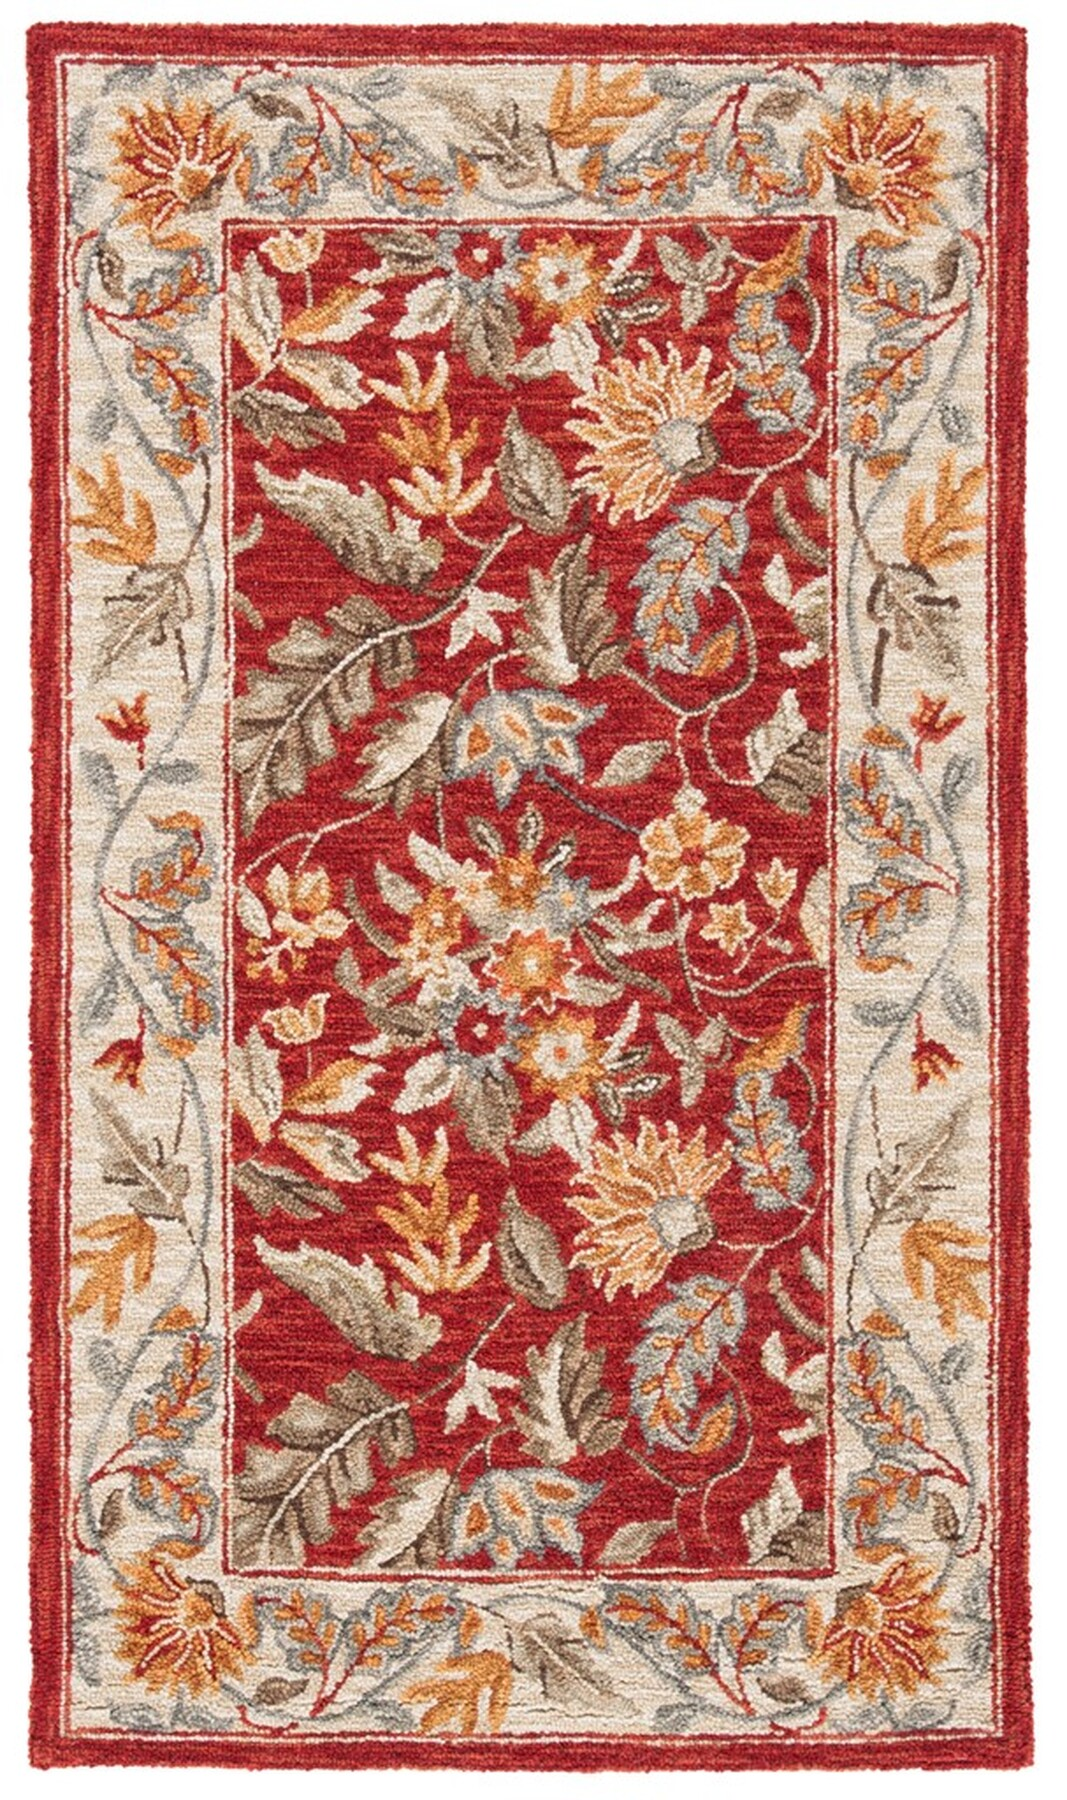 Rug Hk141c Chelsea Area Rugs By Safavieh